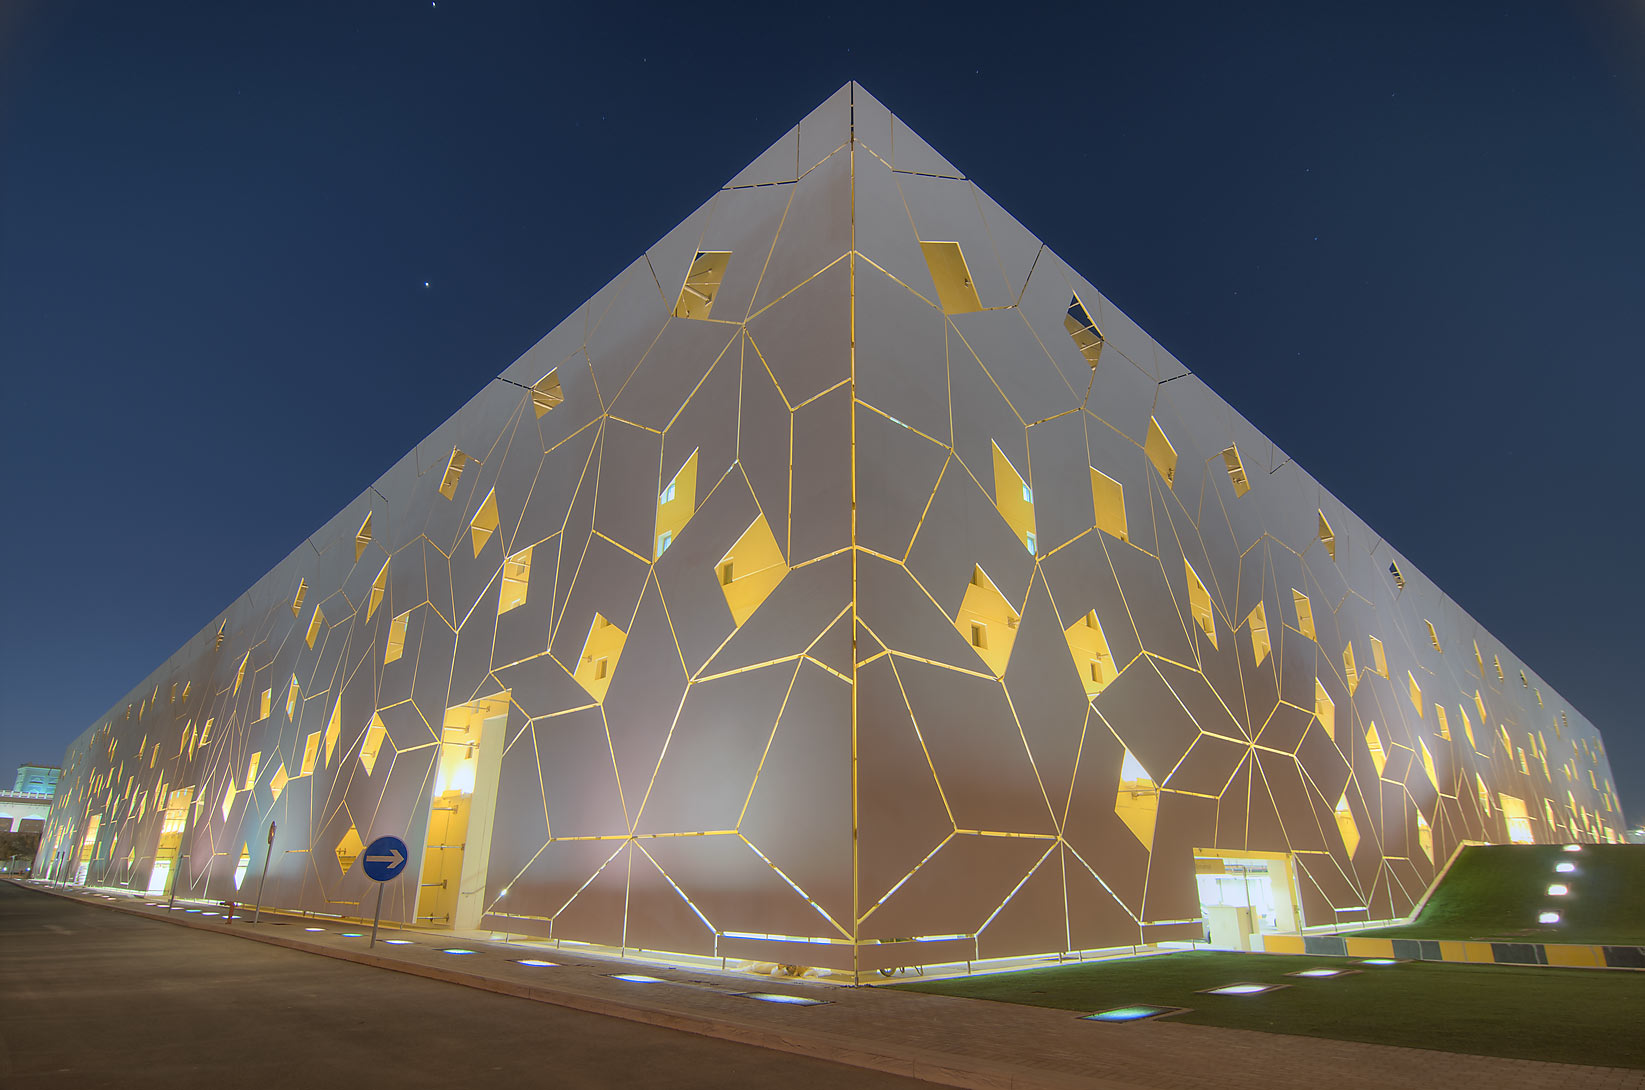 Liberal Arts and Science (LAS) building in Education City campus, at evening. Doha, Qatar